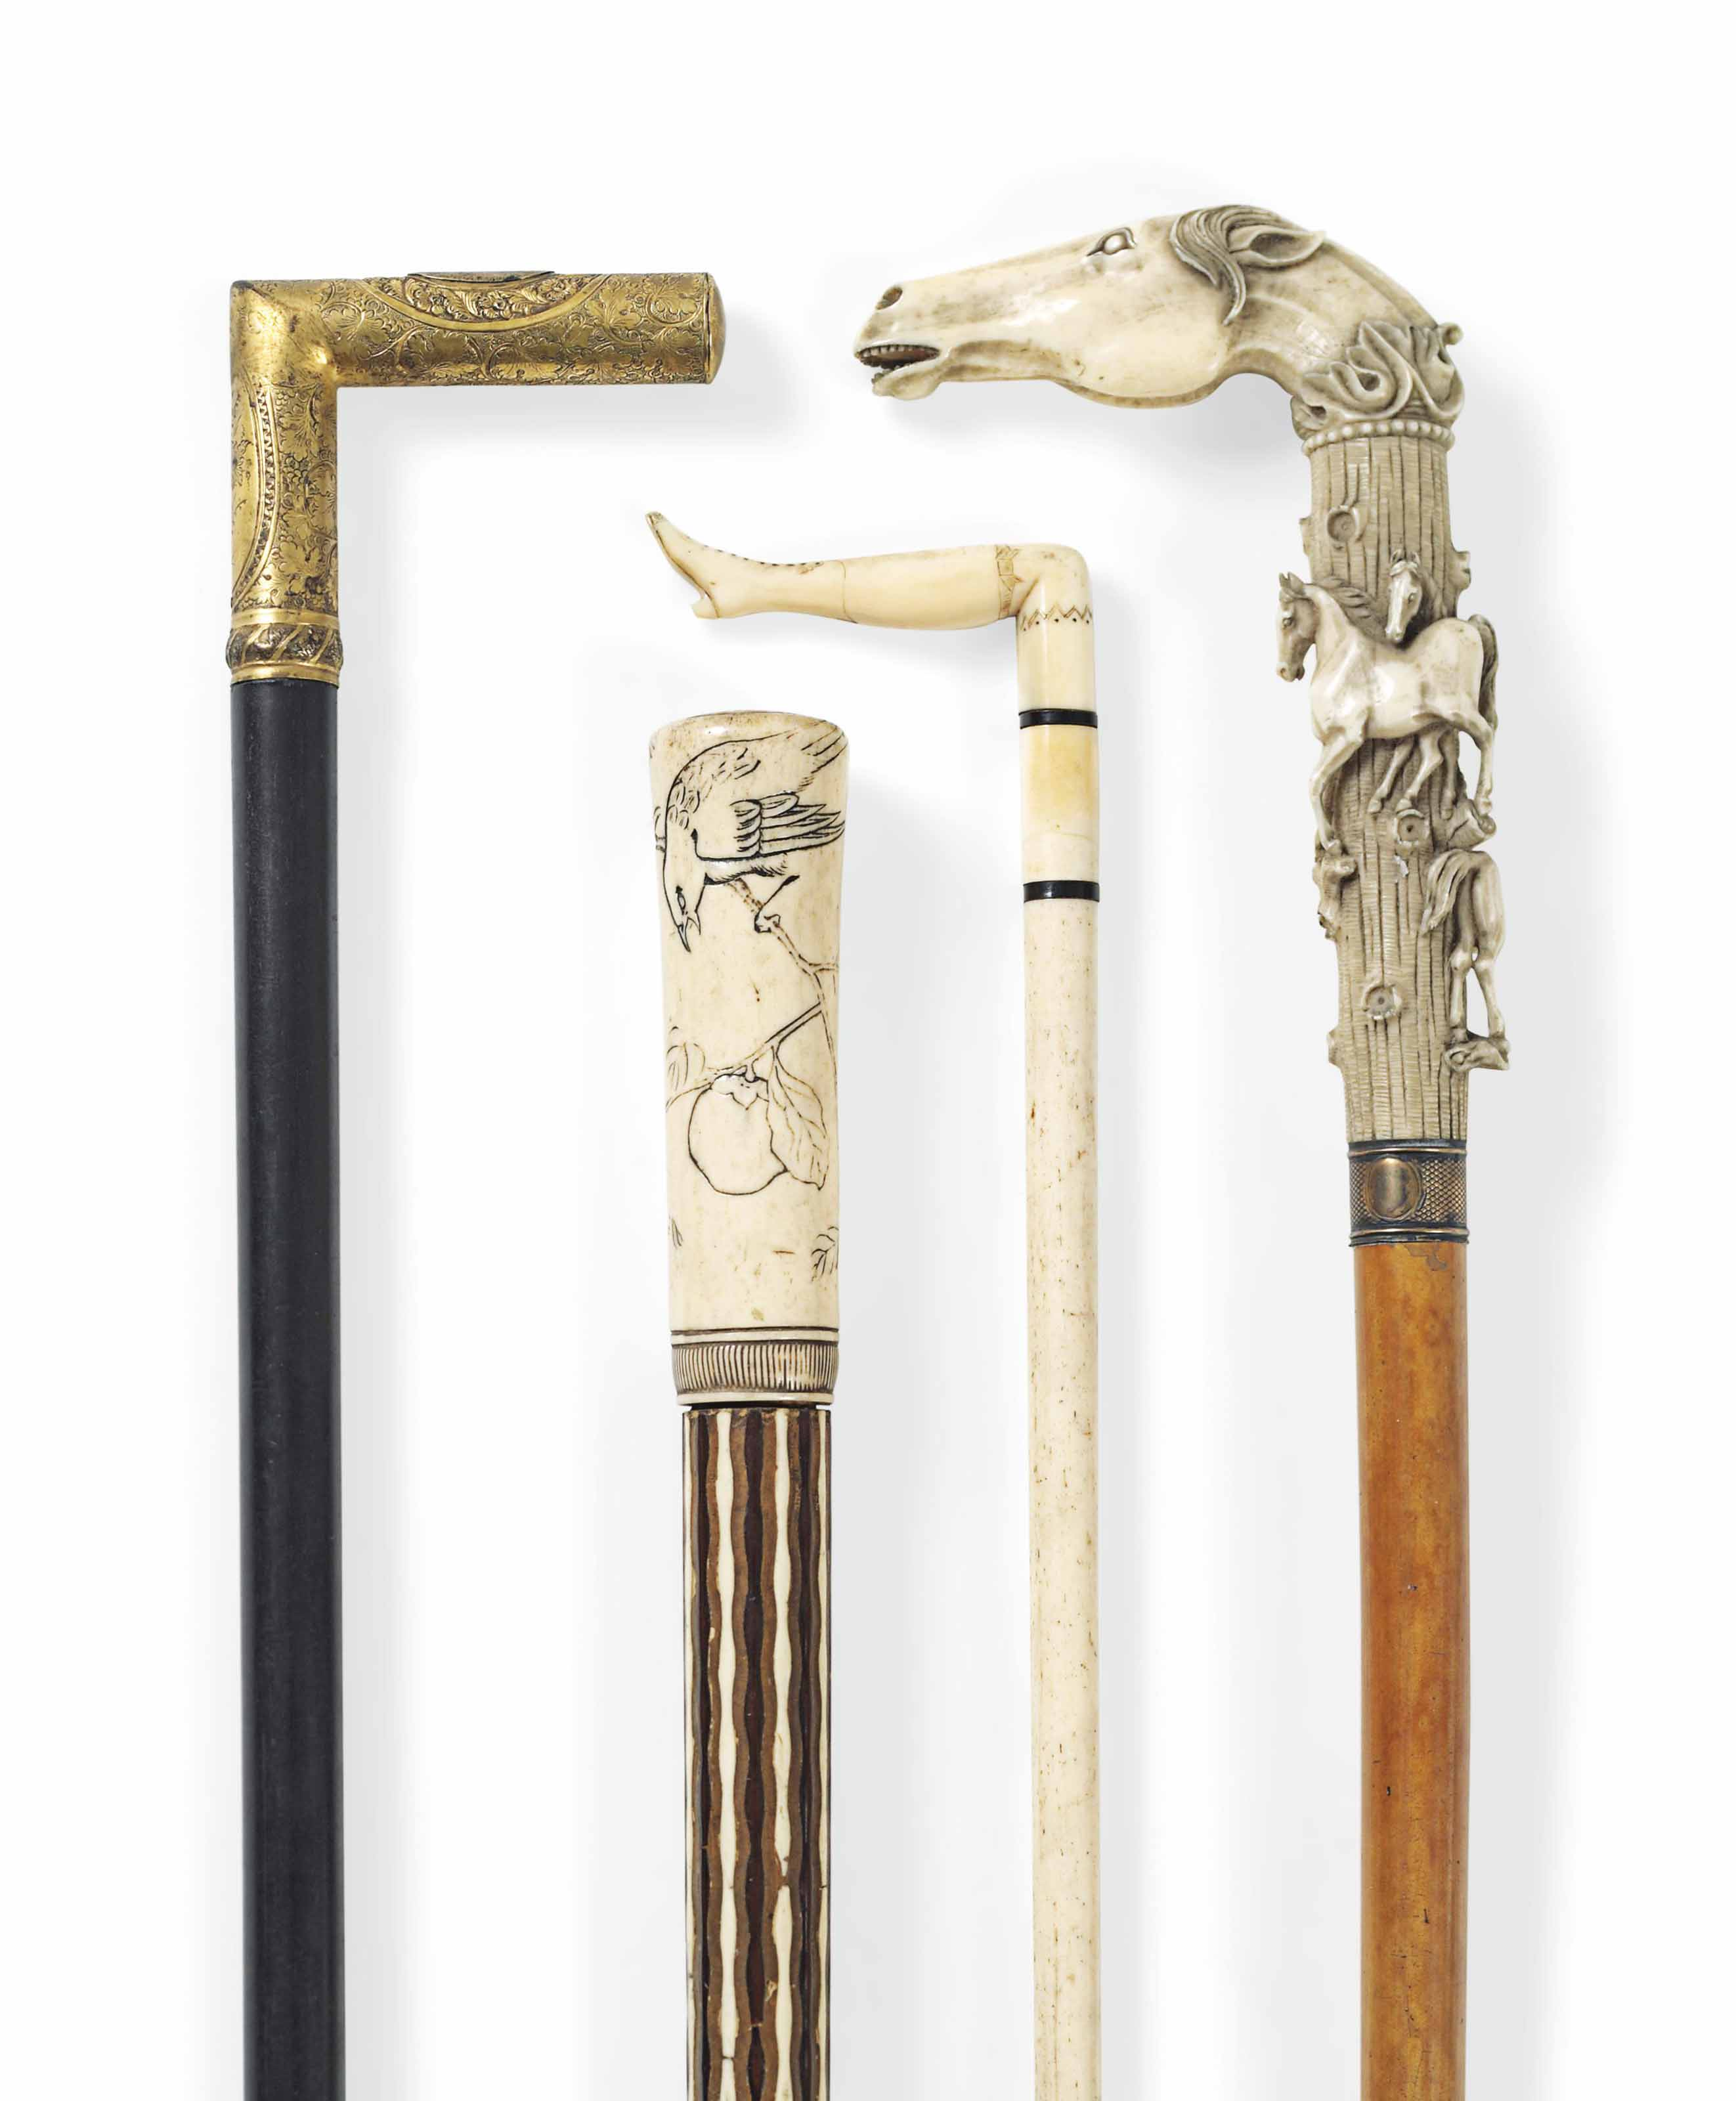 A COLLECTION OF FOUR WALKING CANES